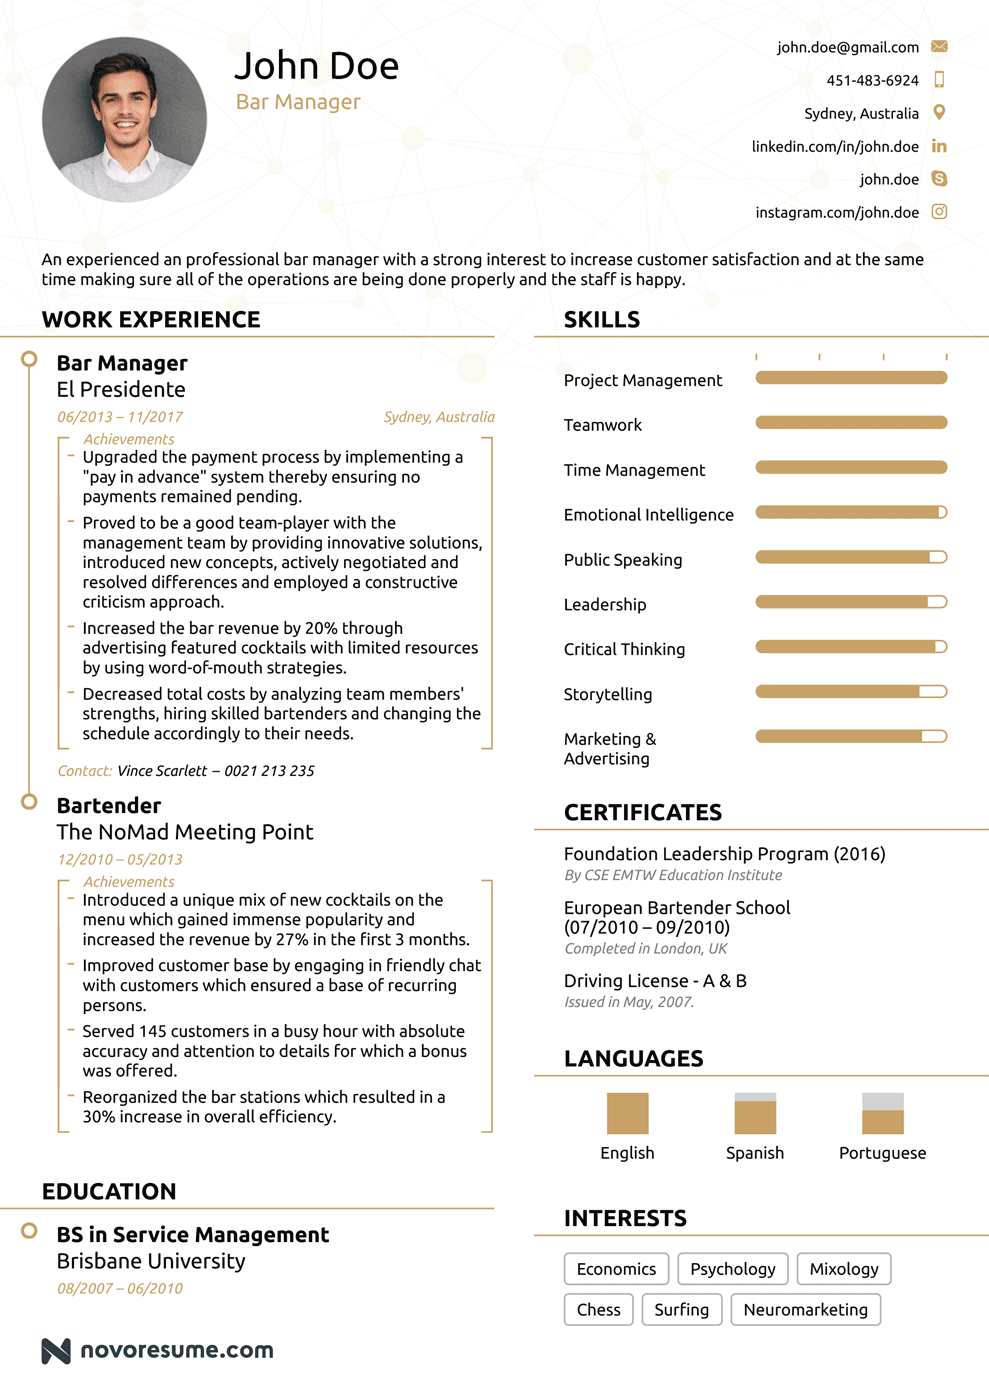 Bar & Restaurant Manager Resume Example - Update Yours for 2018